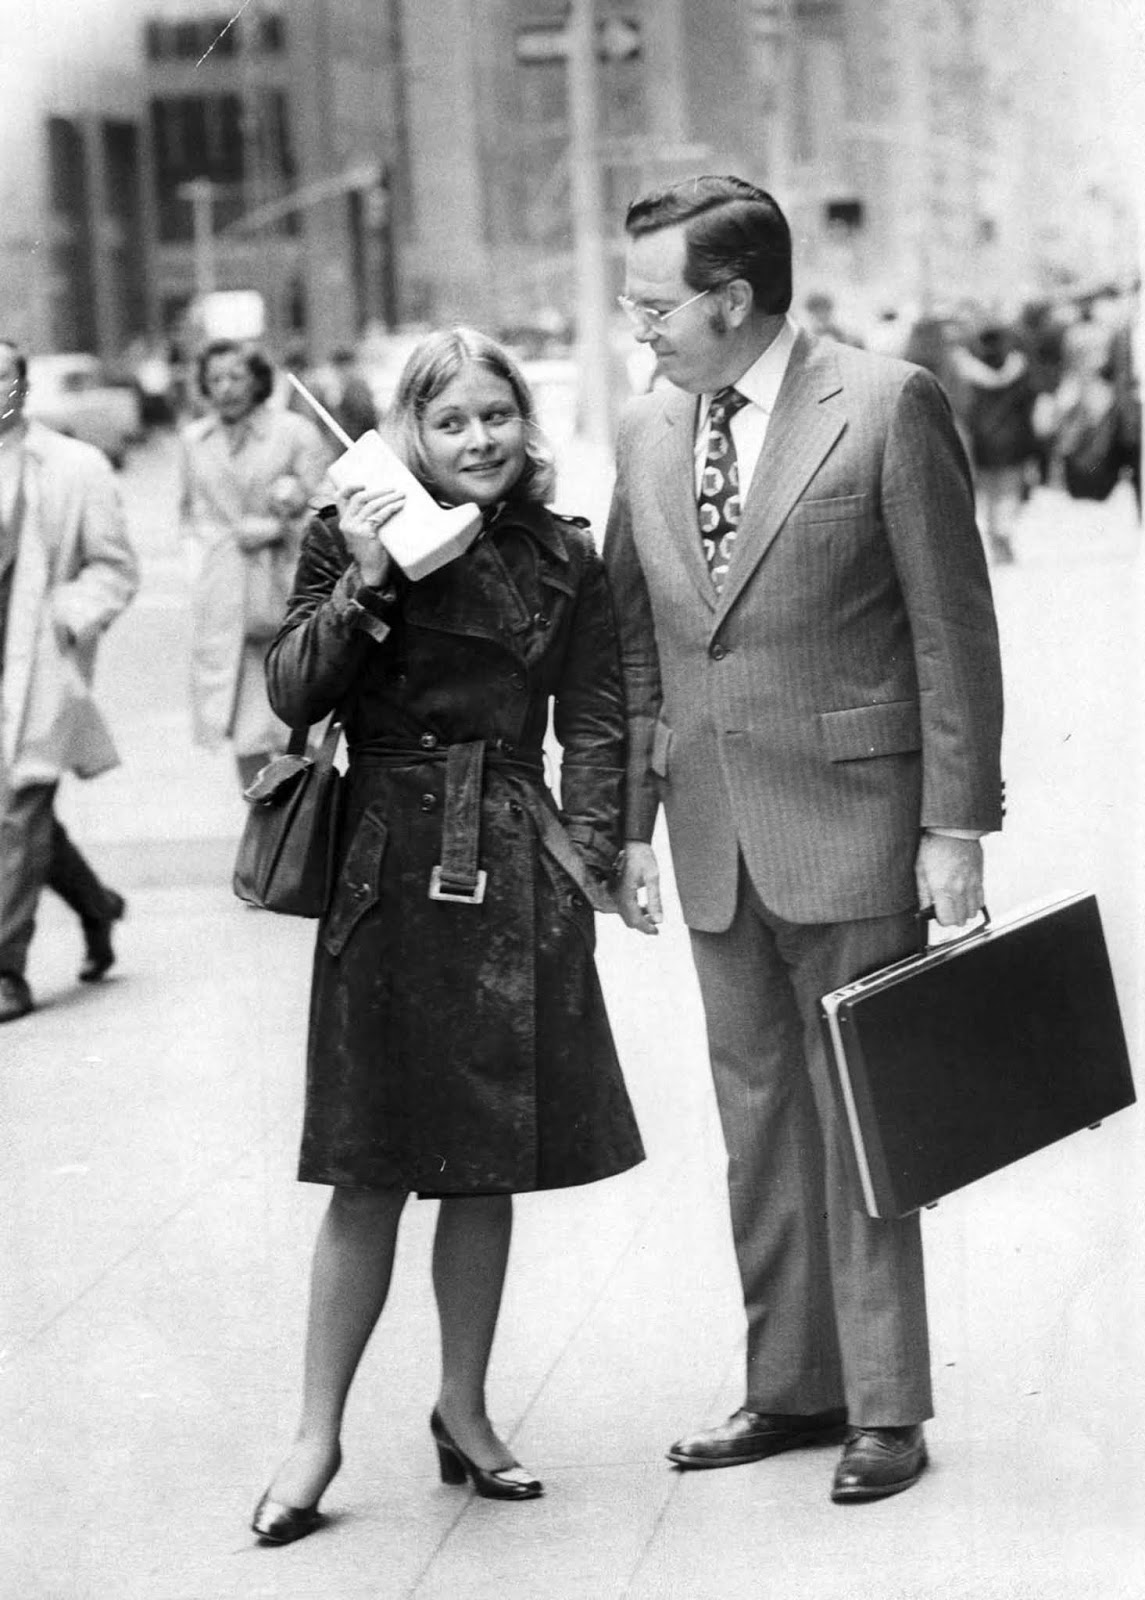 Jeanne Bauer walks with a DynaTAC on 6th Avenue in New York, accompanied by John Mitchell, the Motorola engineer behind the phone. 1973.